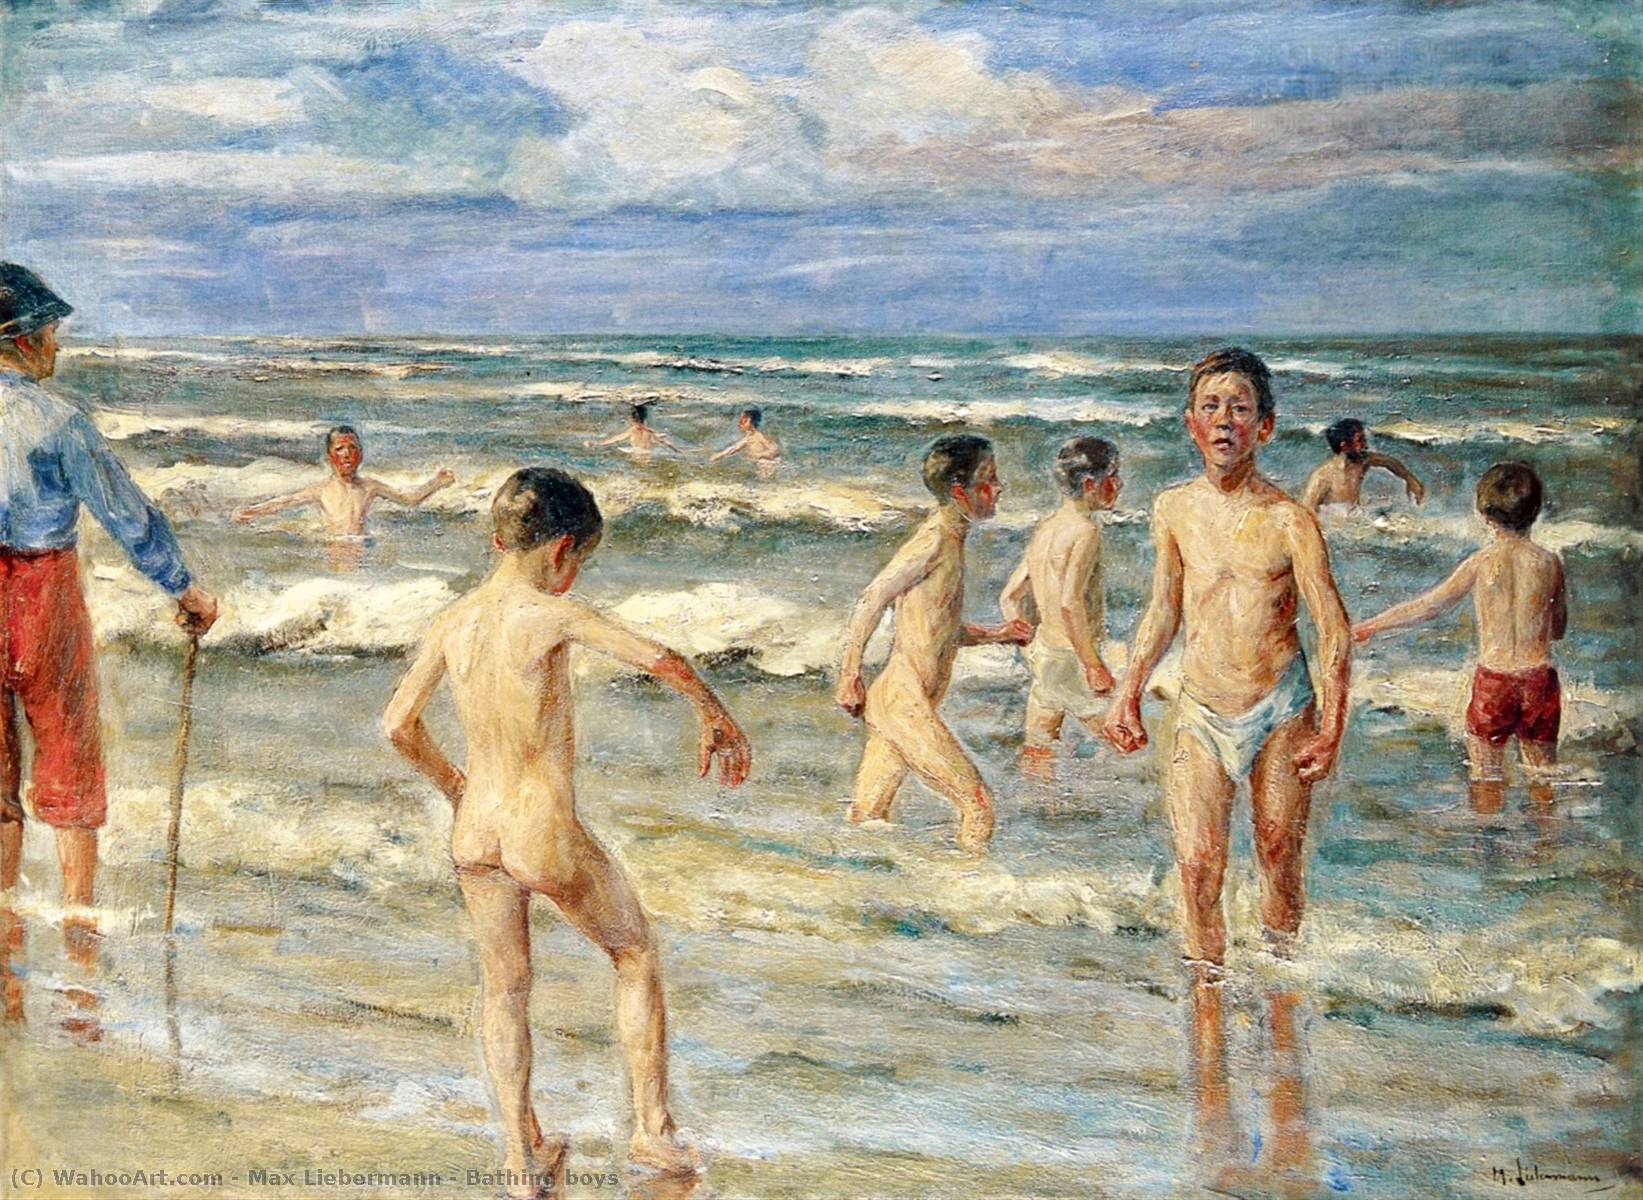 famous painting Bathing boys of Max Liebermann